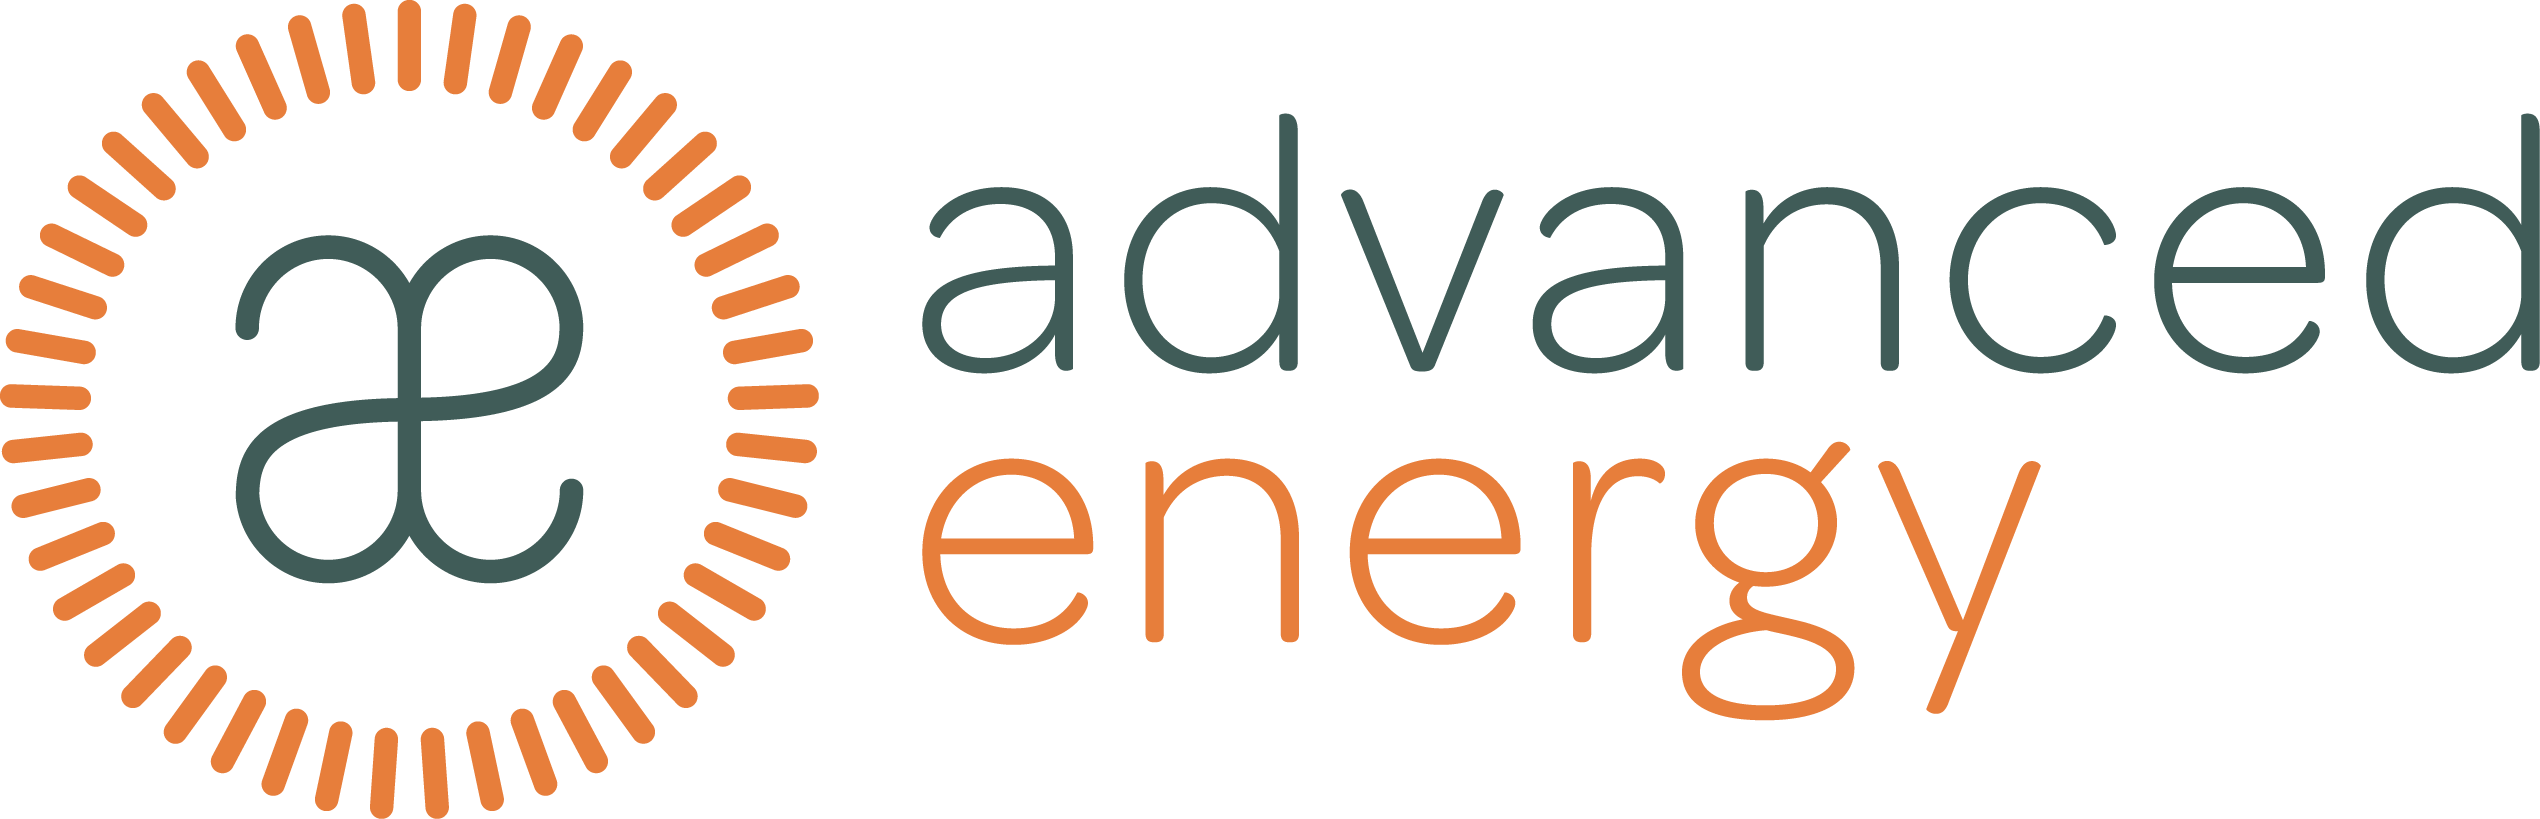 AdvancedEnergy_Logo_horiz